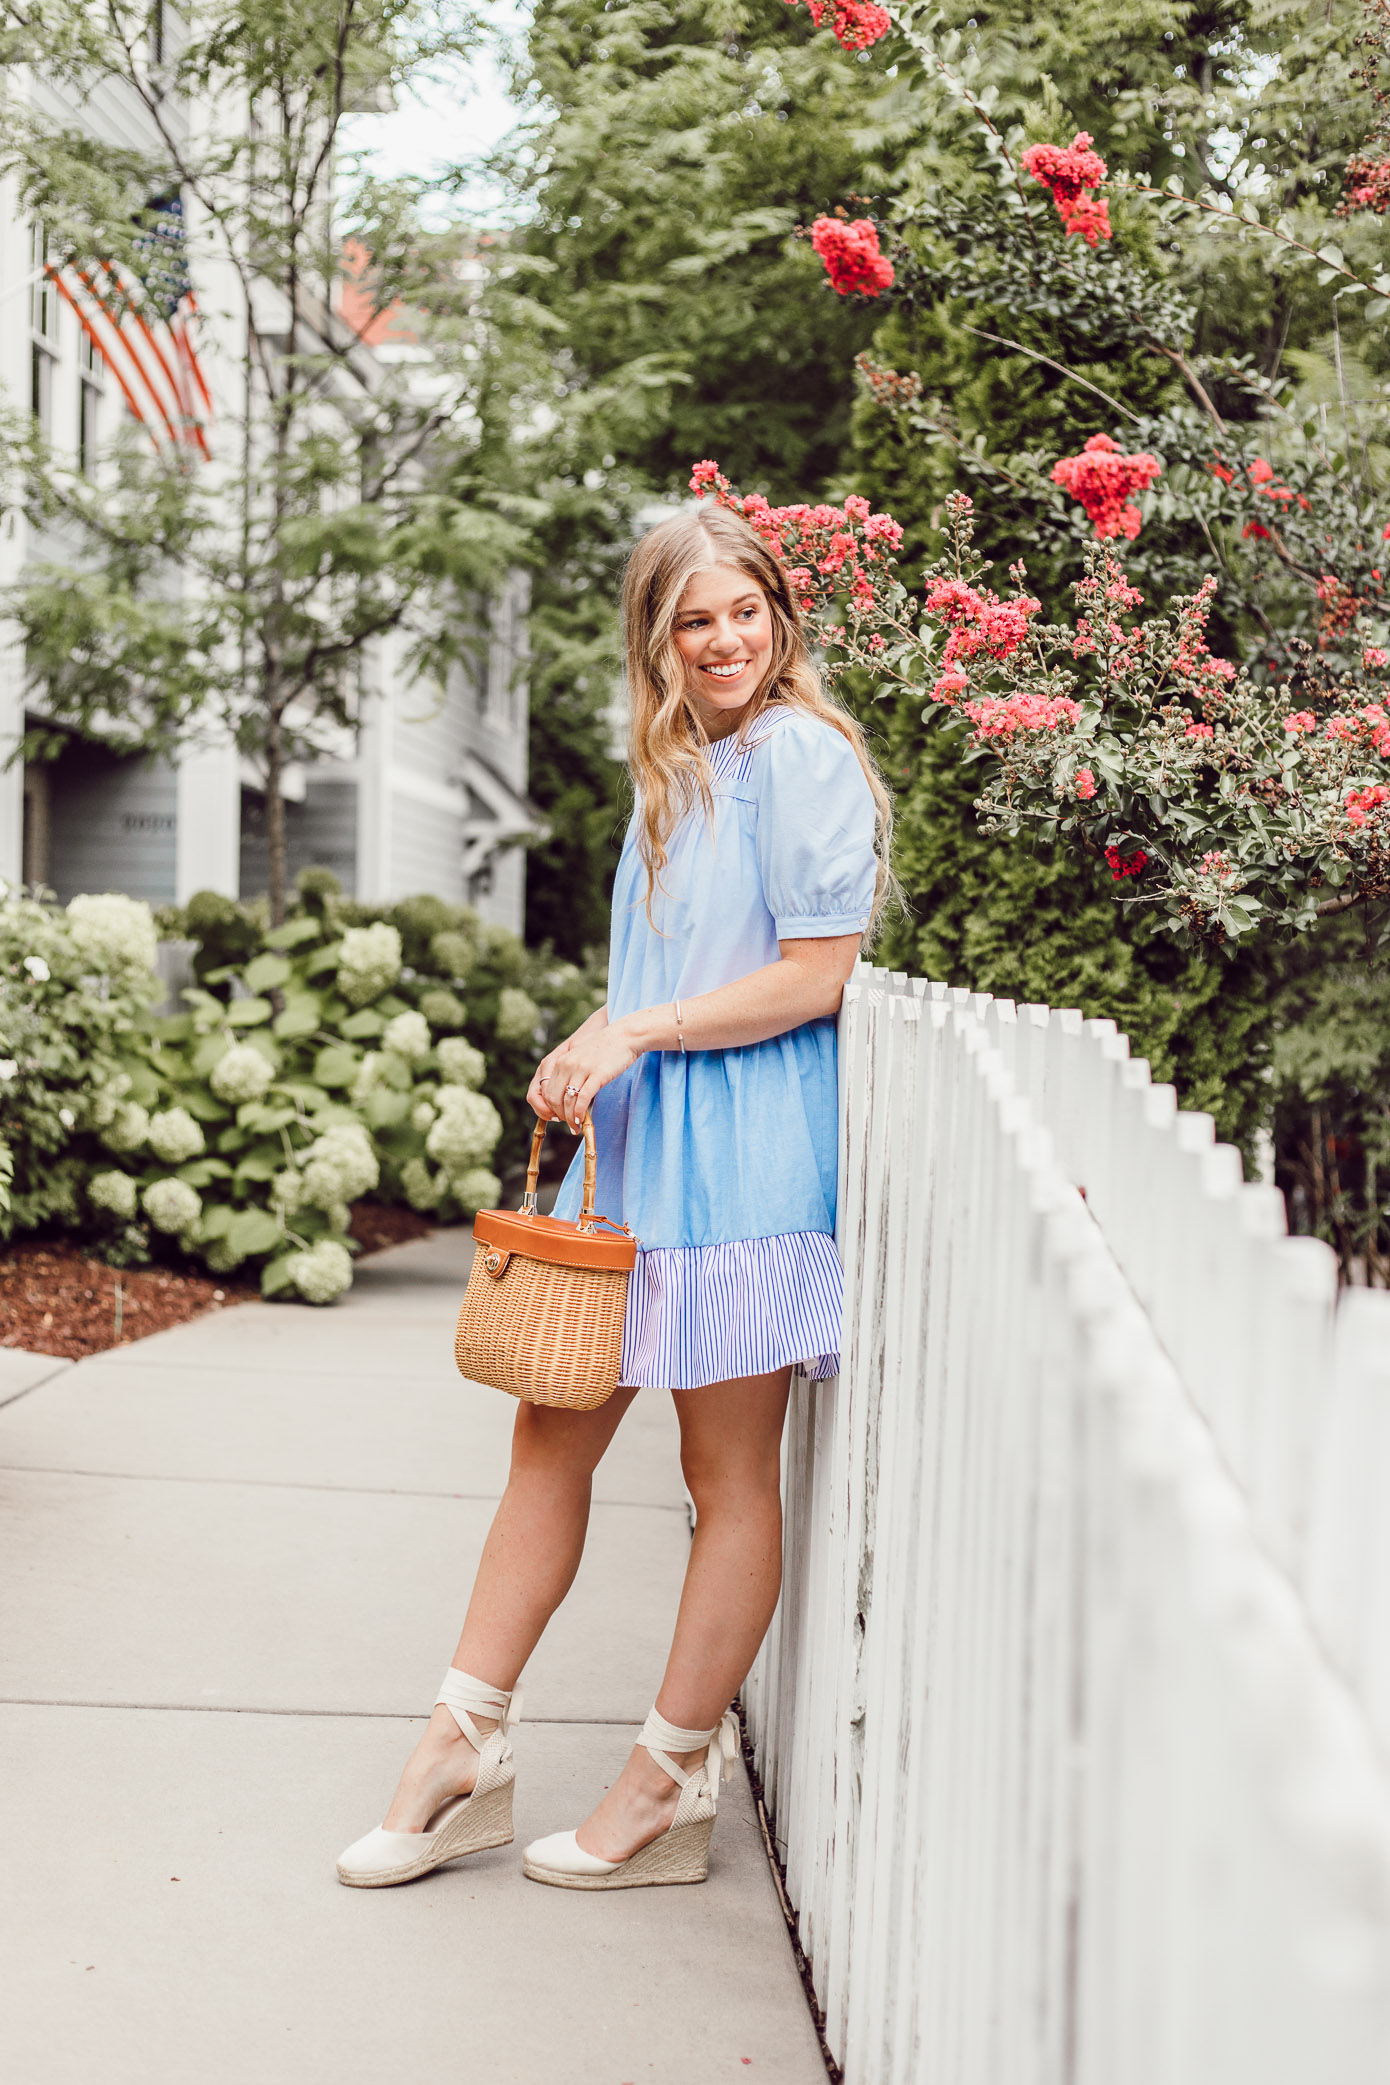 How to style a blue and white striped dress for an easy summer look, English Factory Summer Dress // Louella Reese